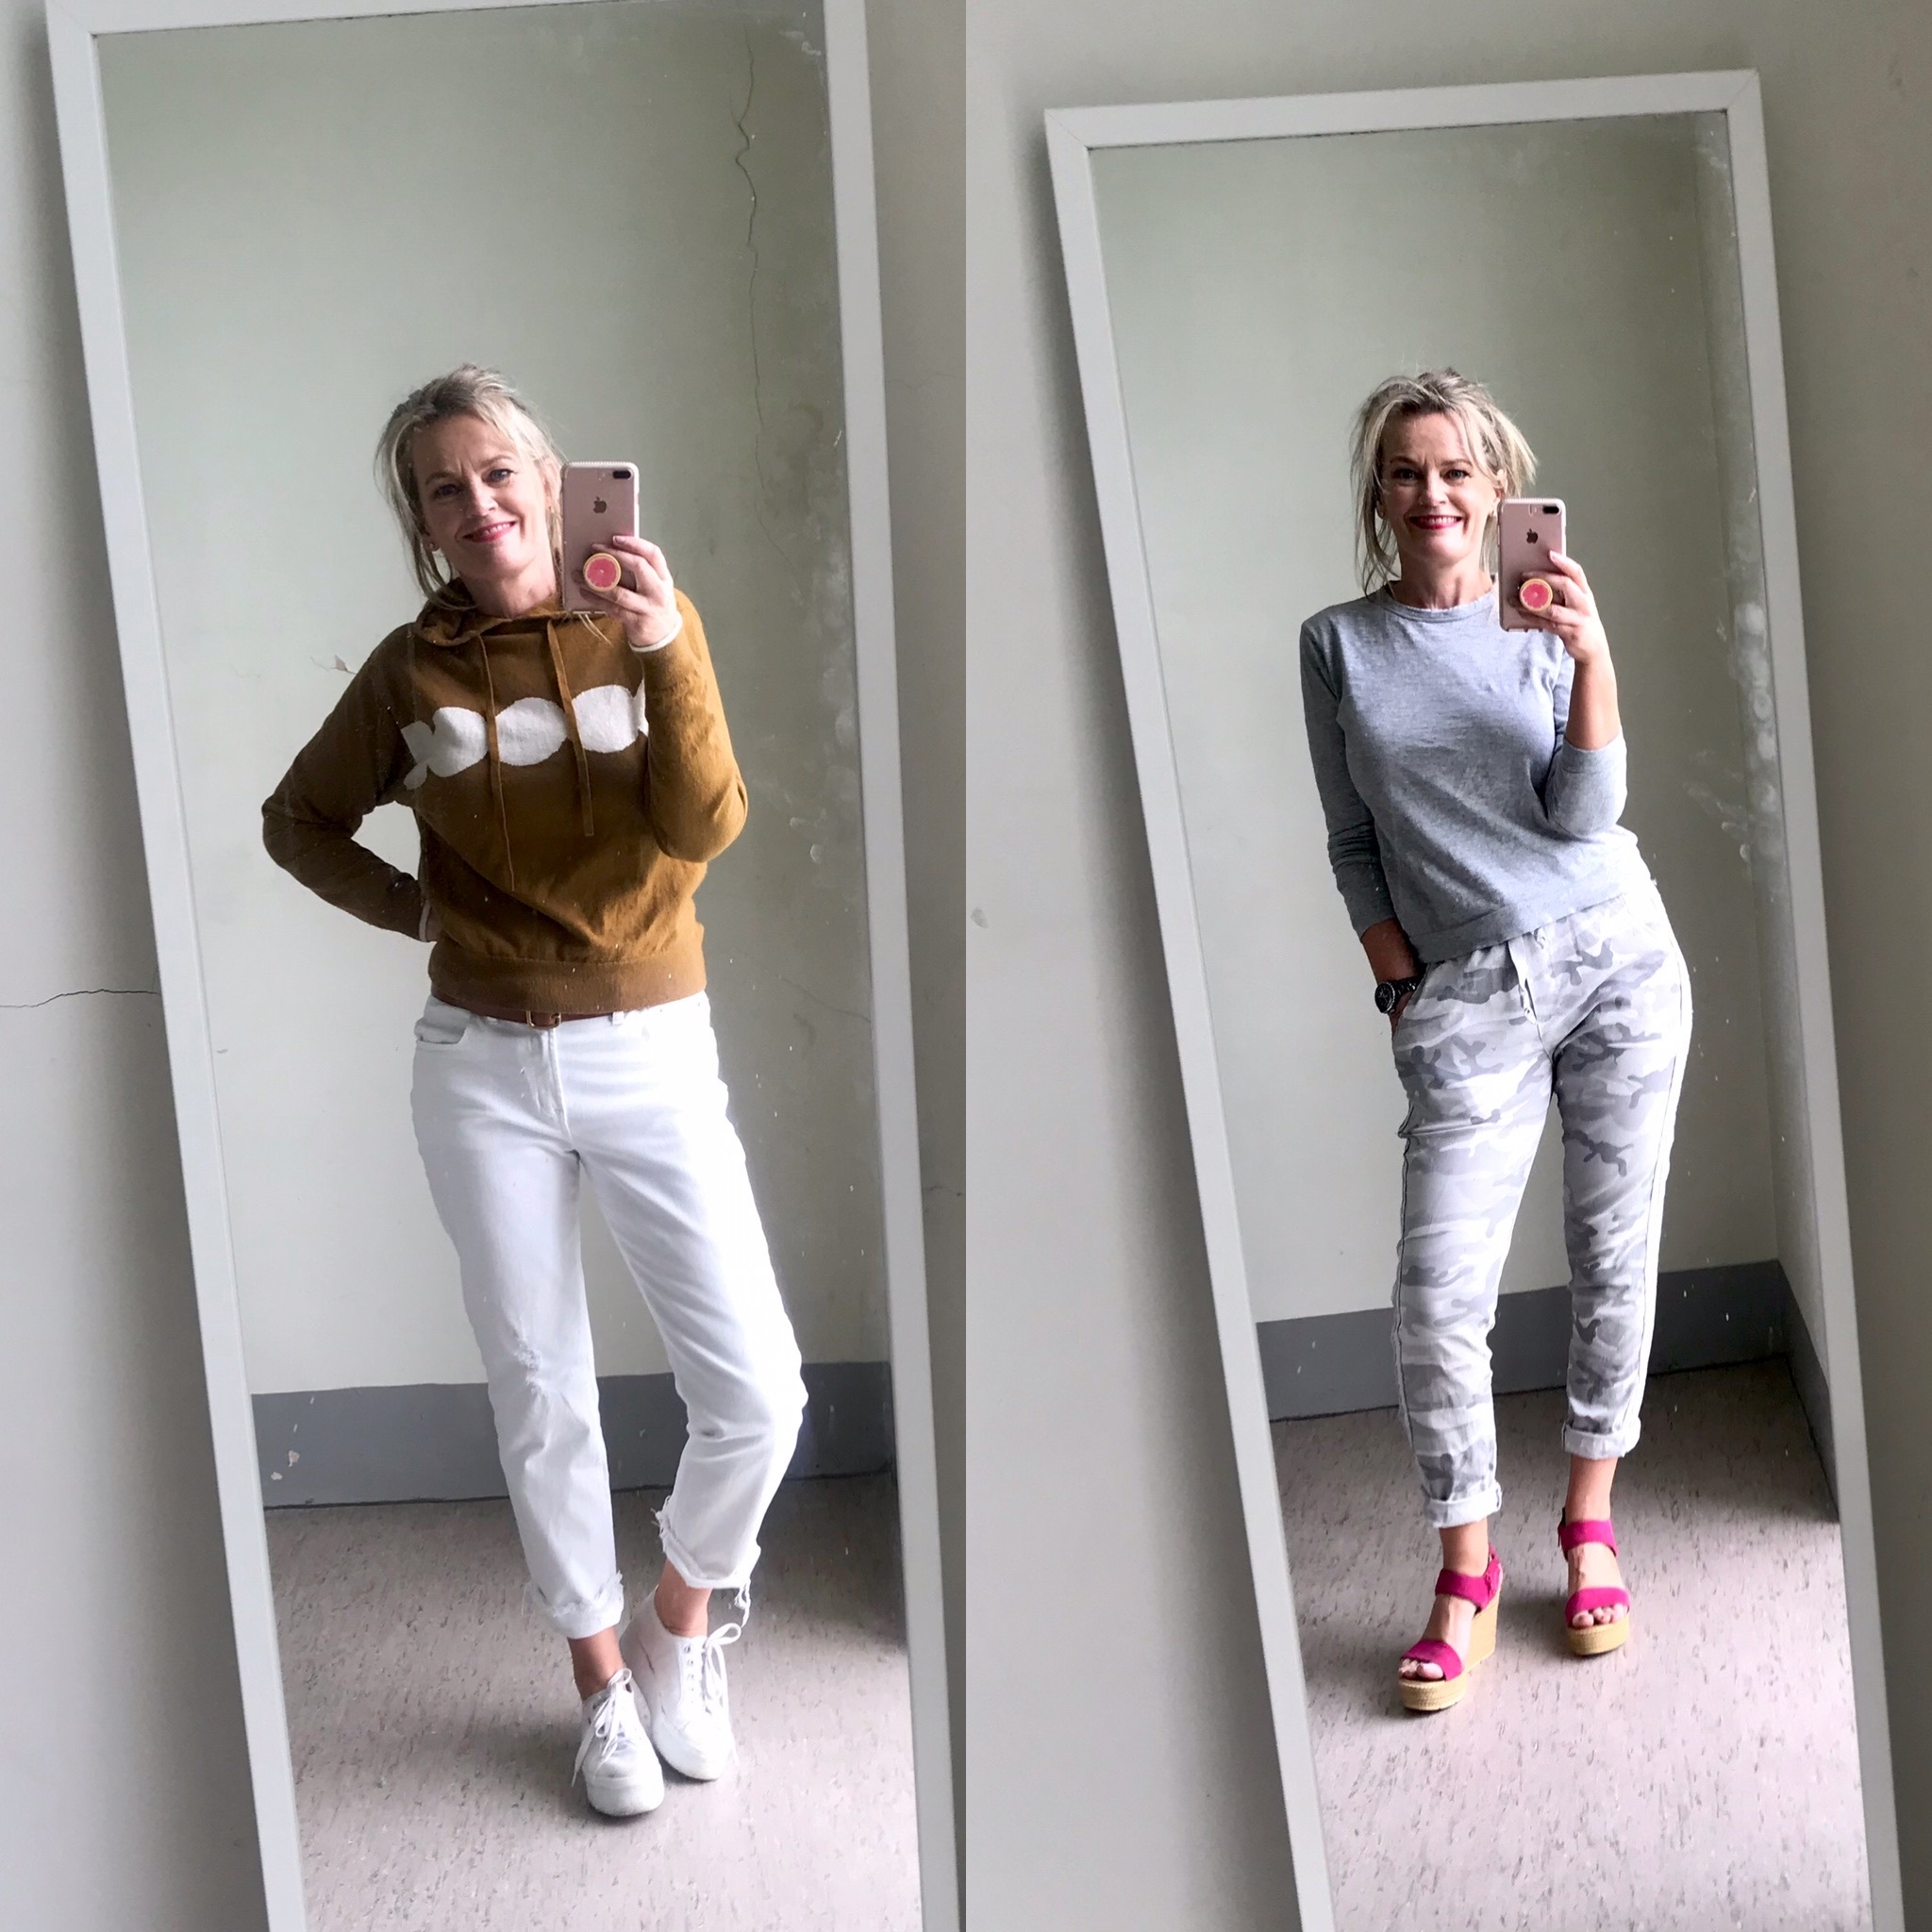 2 full length mirror selfies of an attractive woman